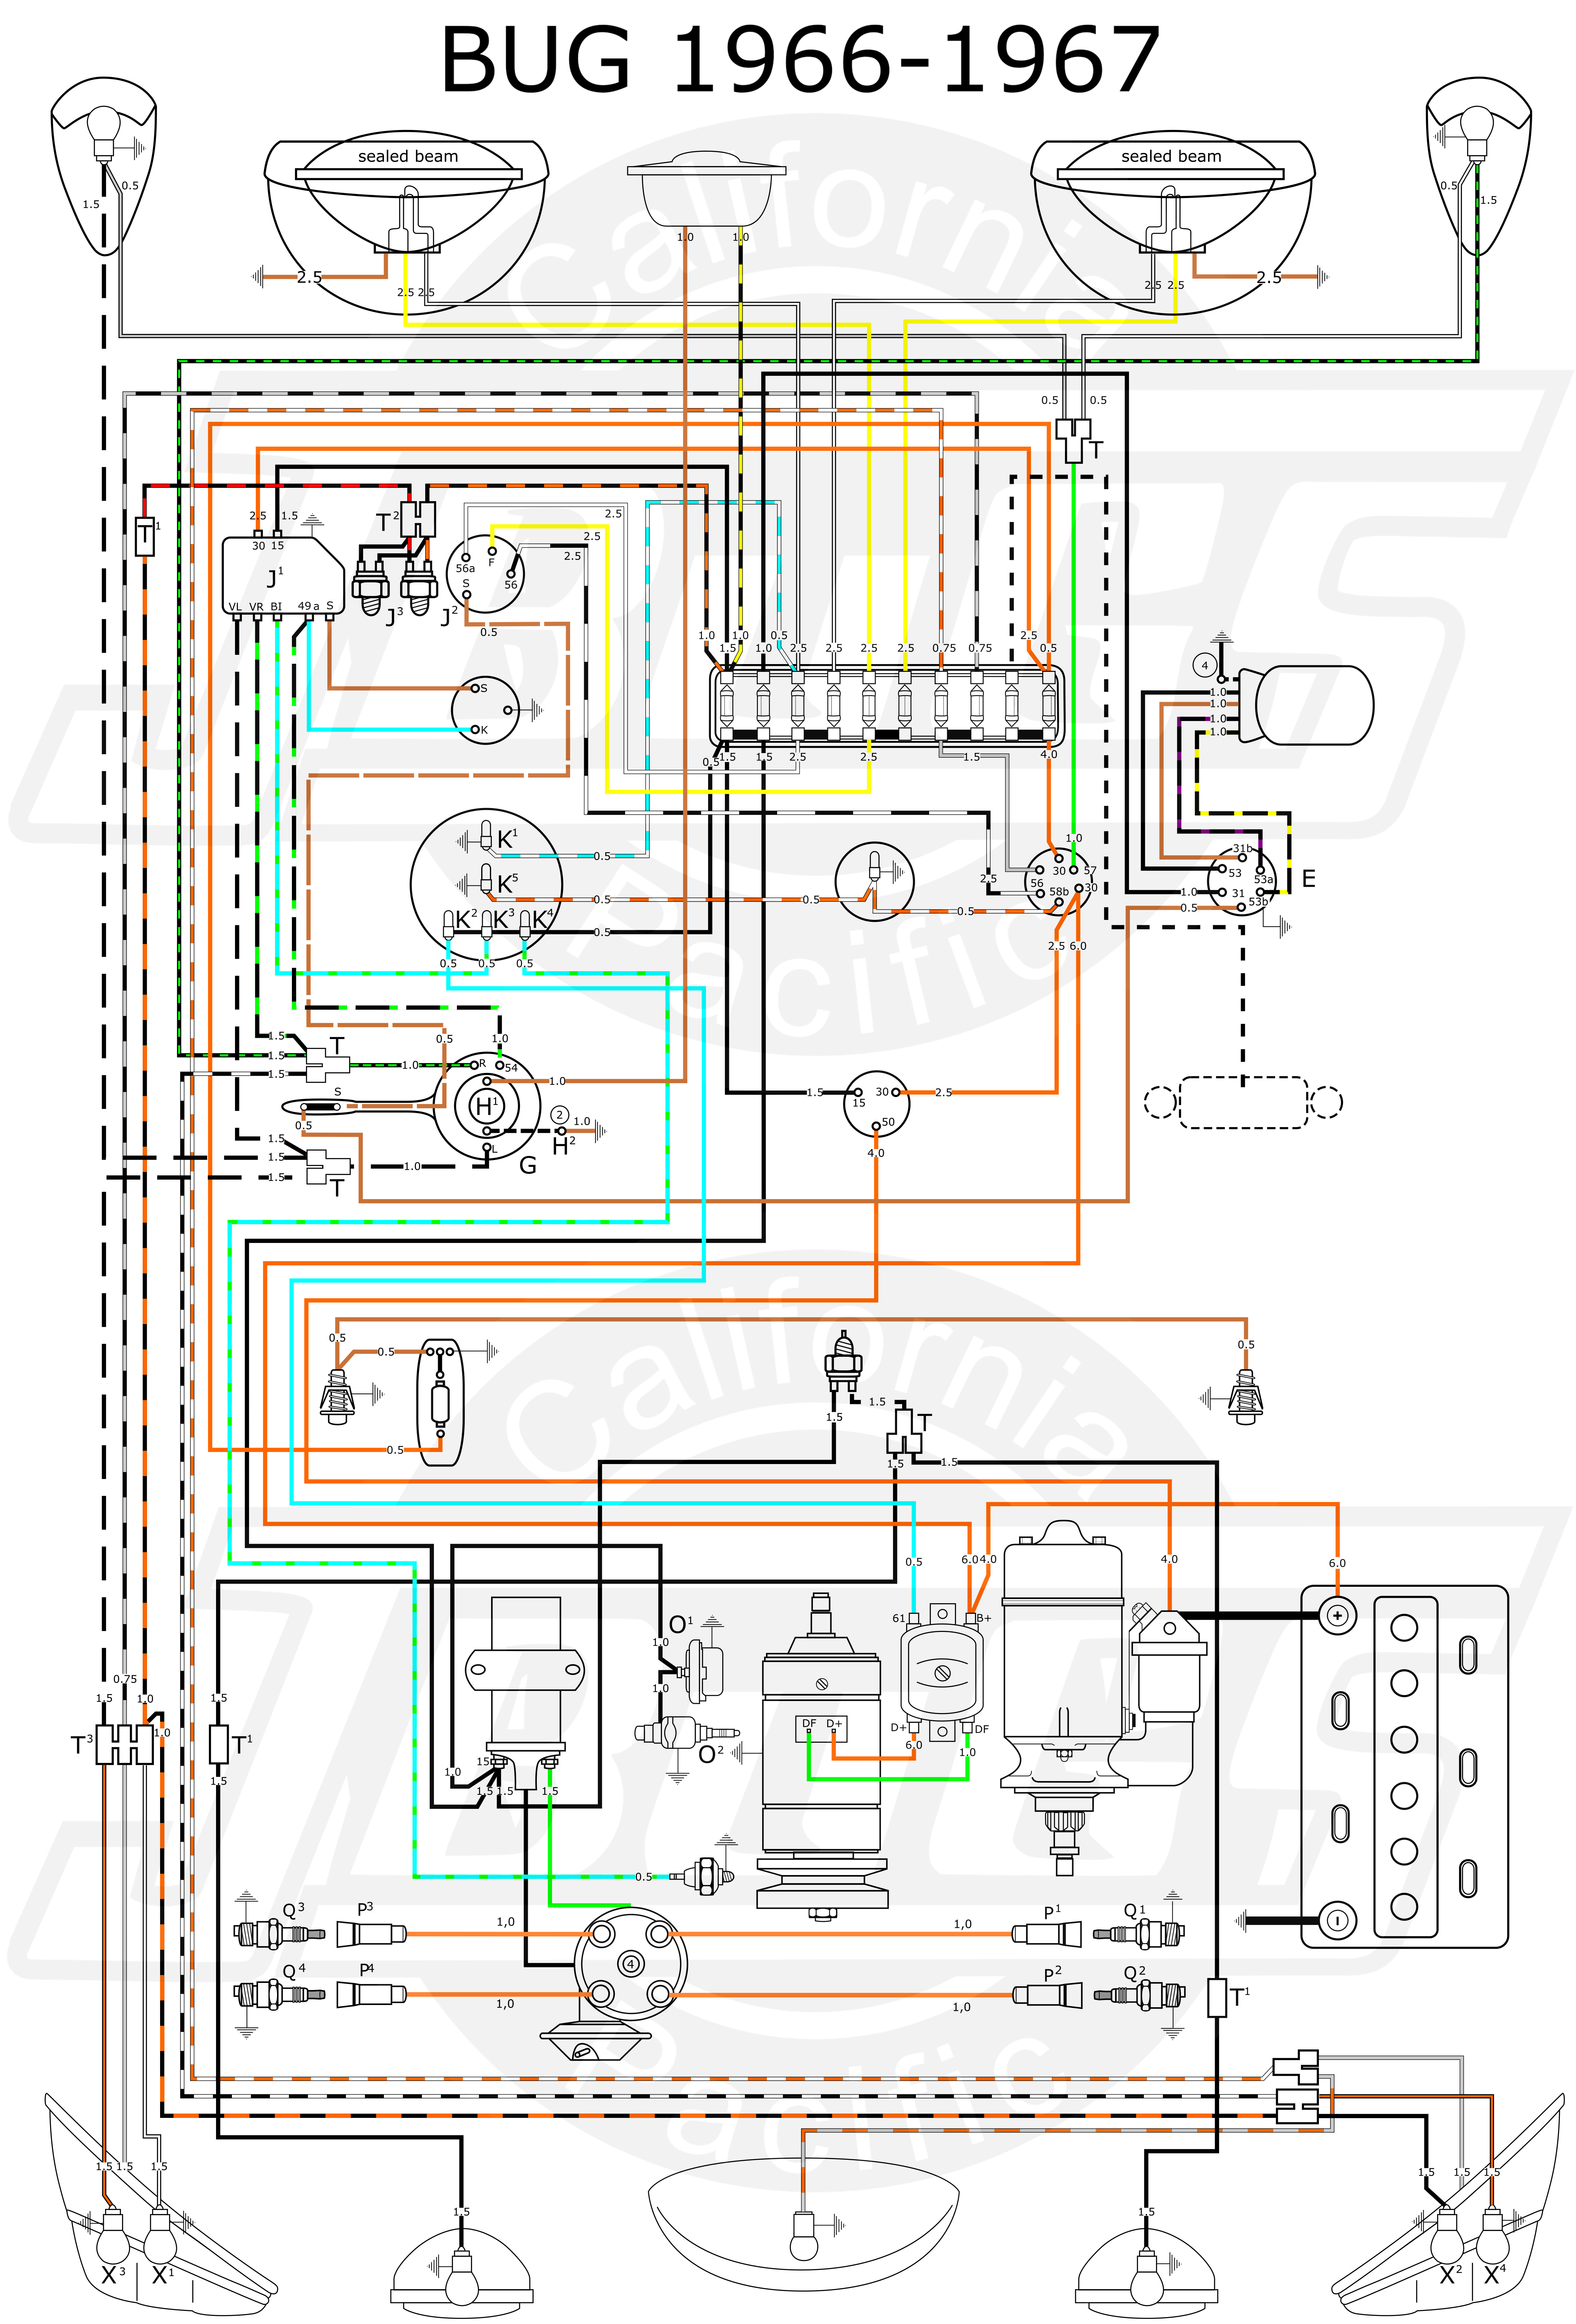 VW Bug 1966 67 Wiring Diagram vw tech article 1966 67 wiring diagram VW Bus Ignition Coil at cos-gaming.co